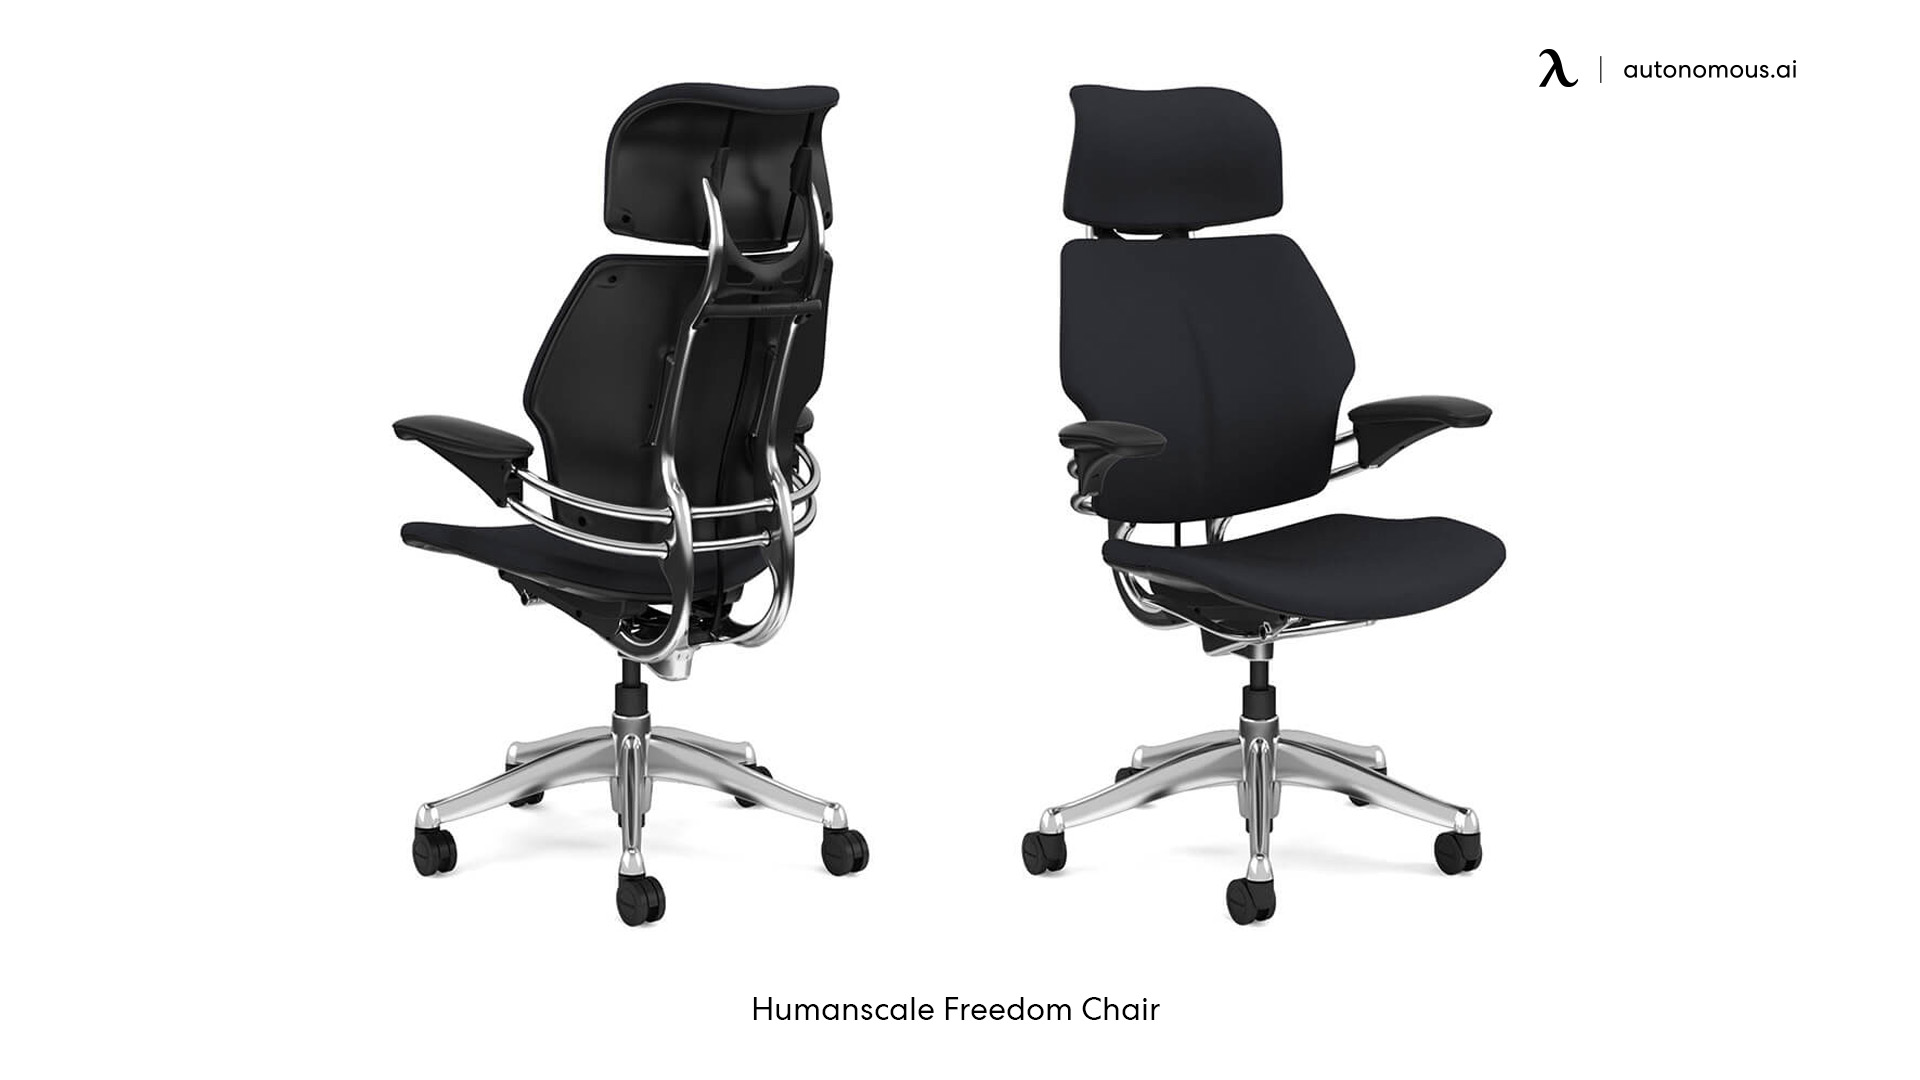 Humanscale Freedom Home Office Chairs